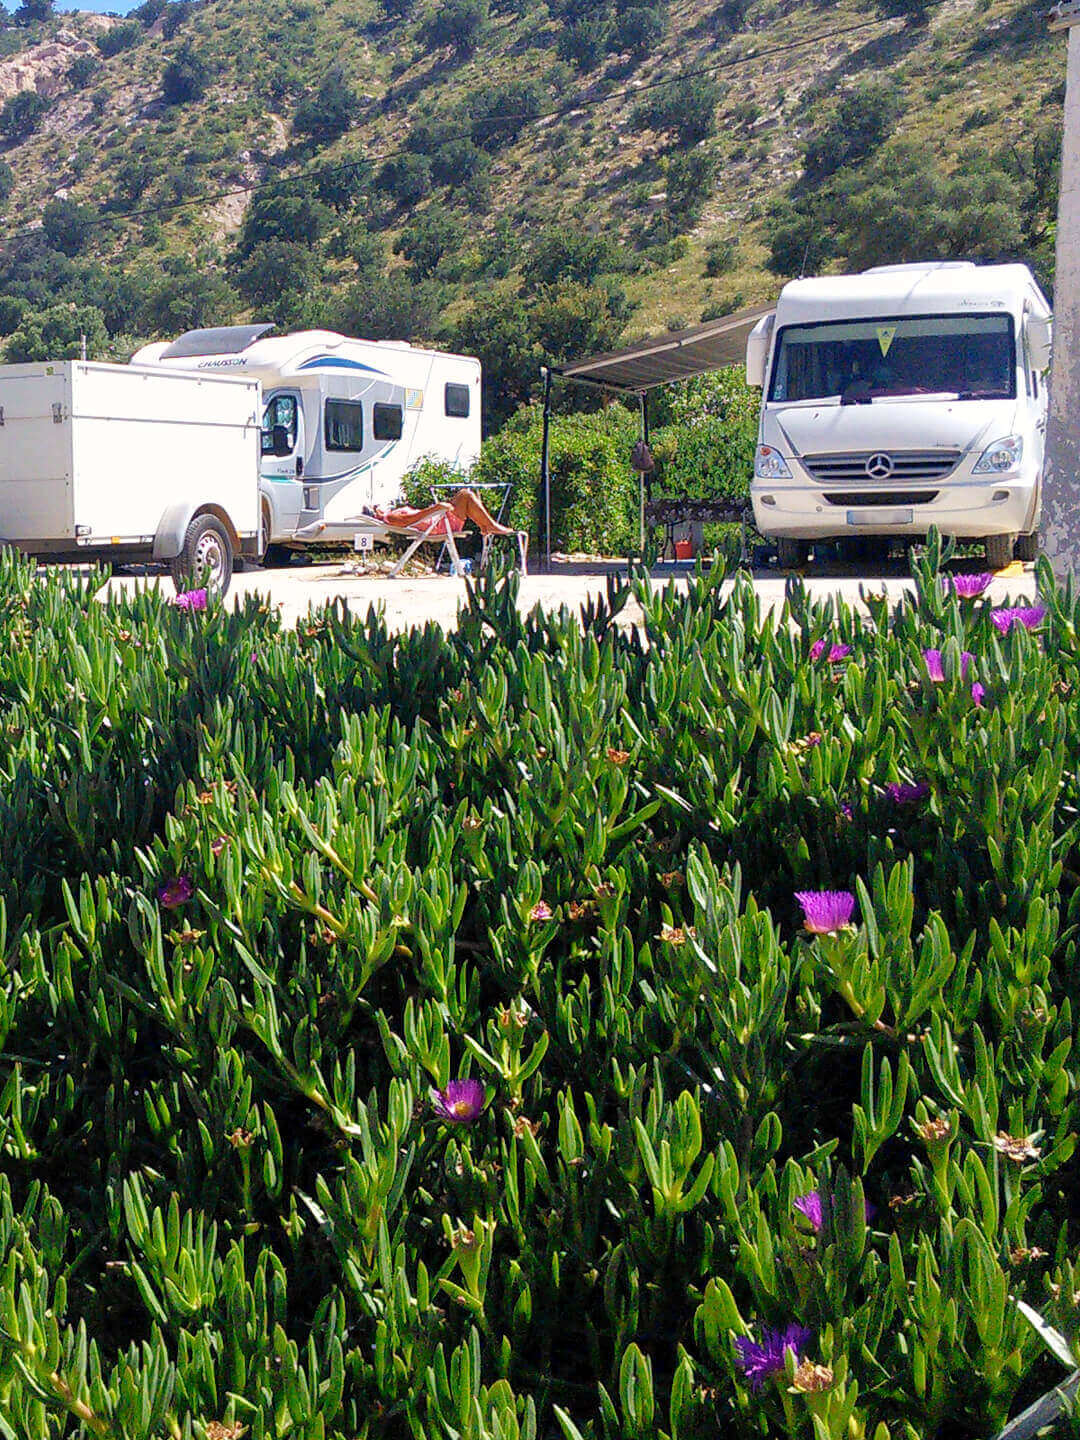 Camping Aourir – A look at the Camping Business, in the Background a Guest is sunbathing